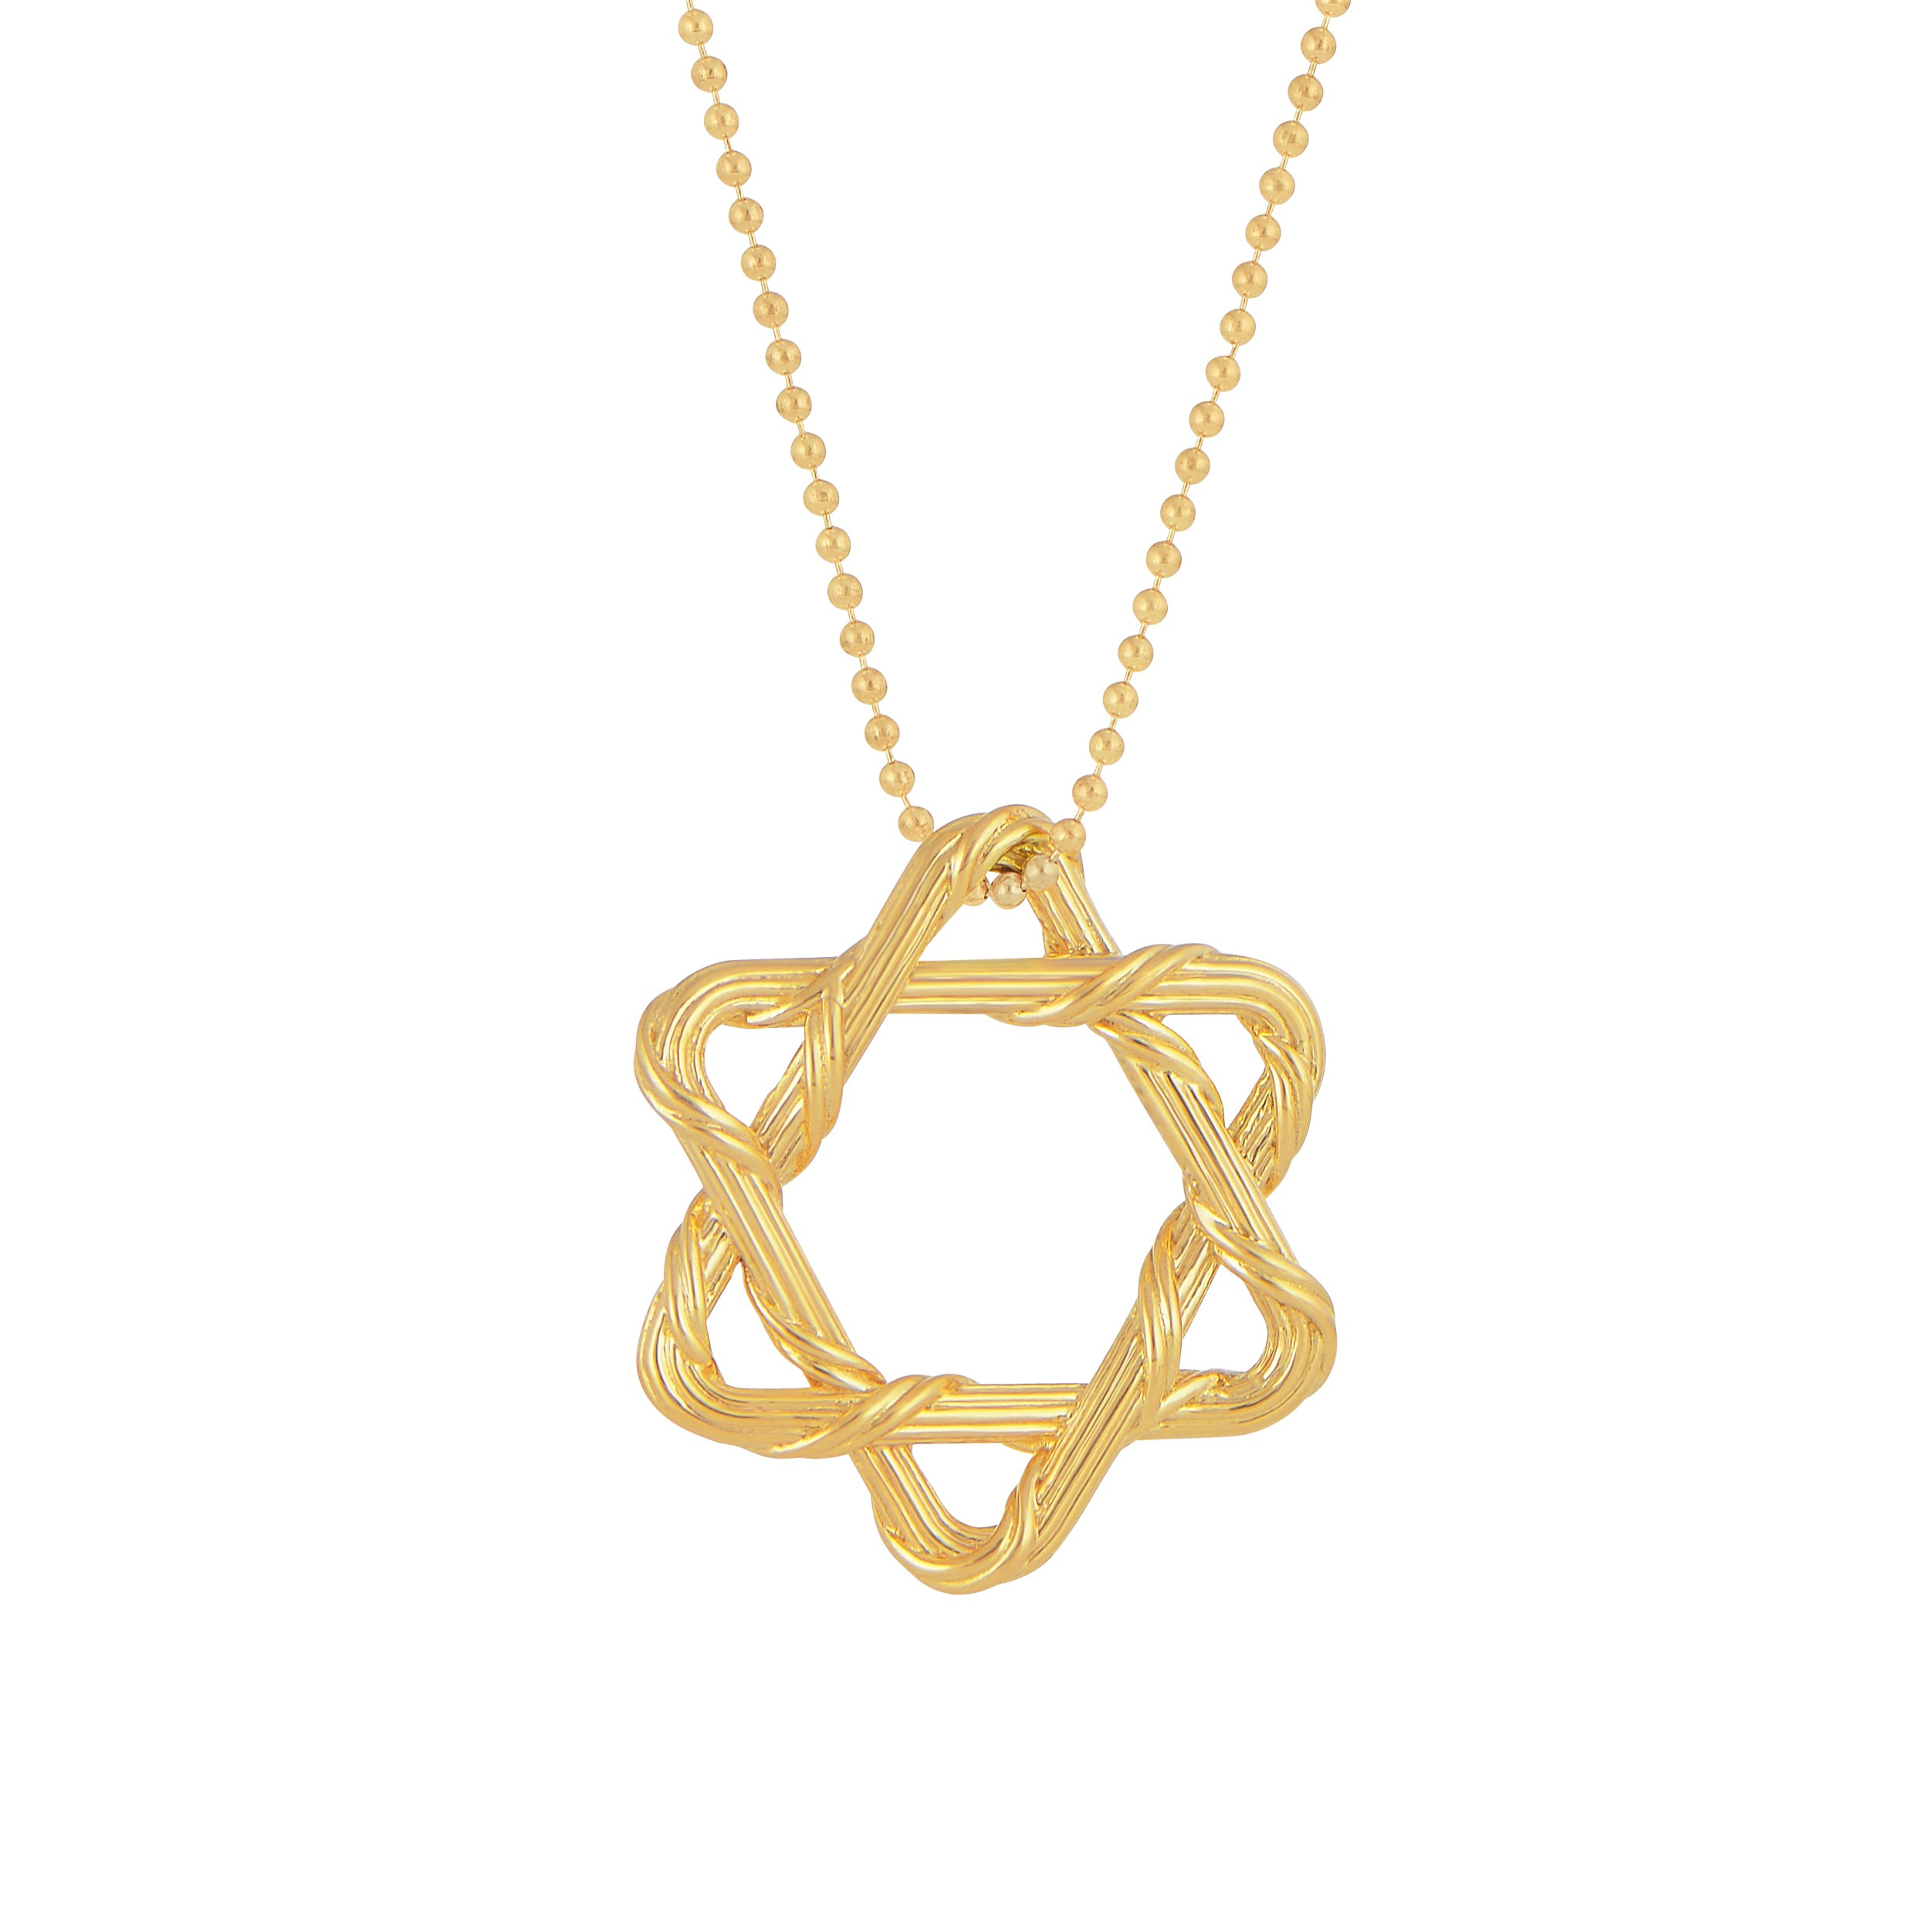 Heritage Star of David Necklace on Beaded Chain in 18K yellow gold